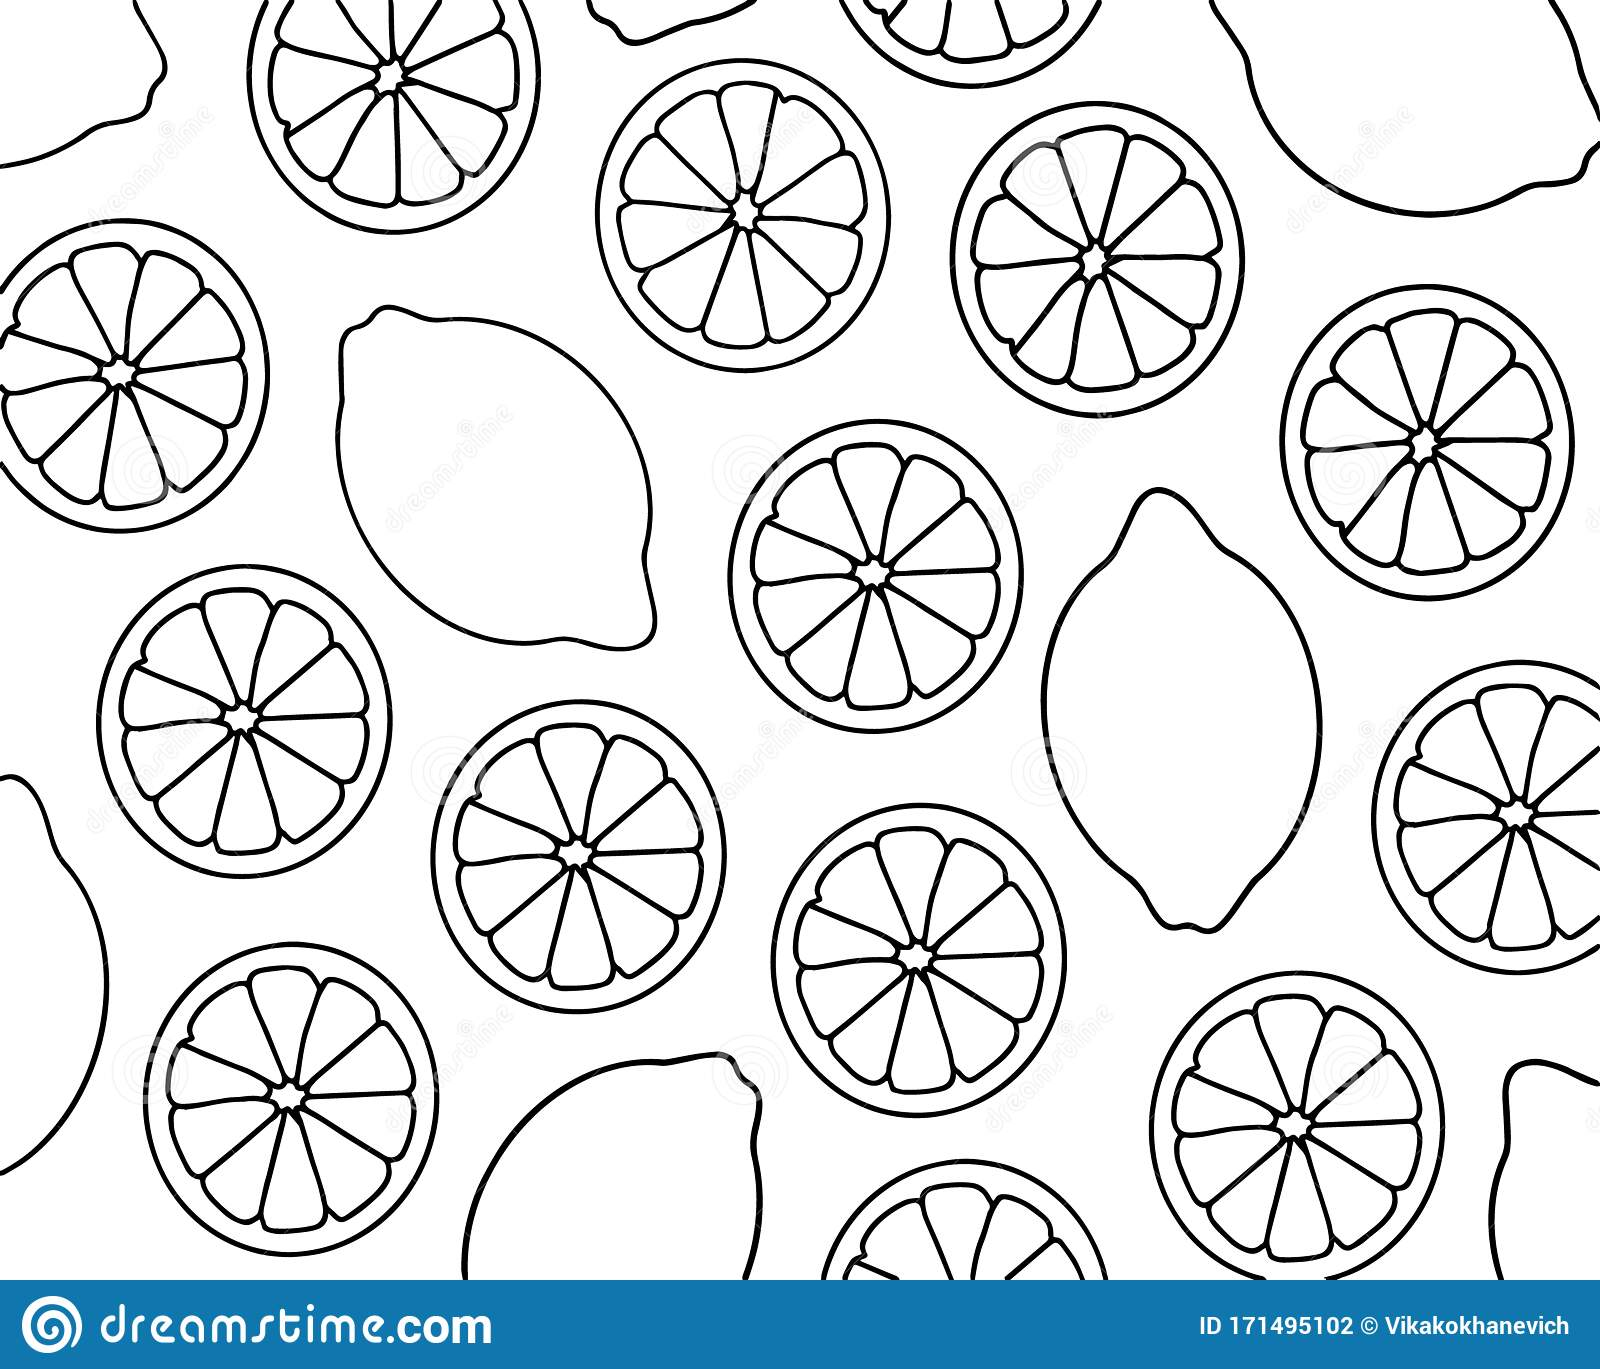 Fruits coloring pages vegetables and fruits   Fruit coloring pages ...   1369x1600